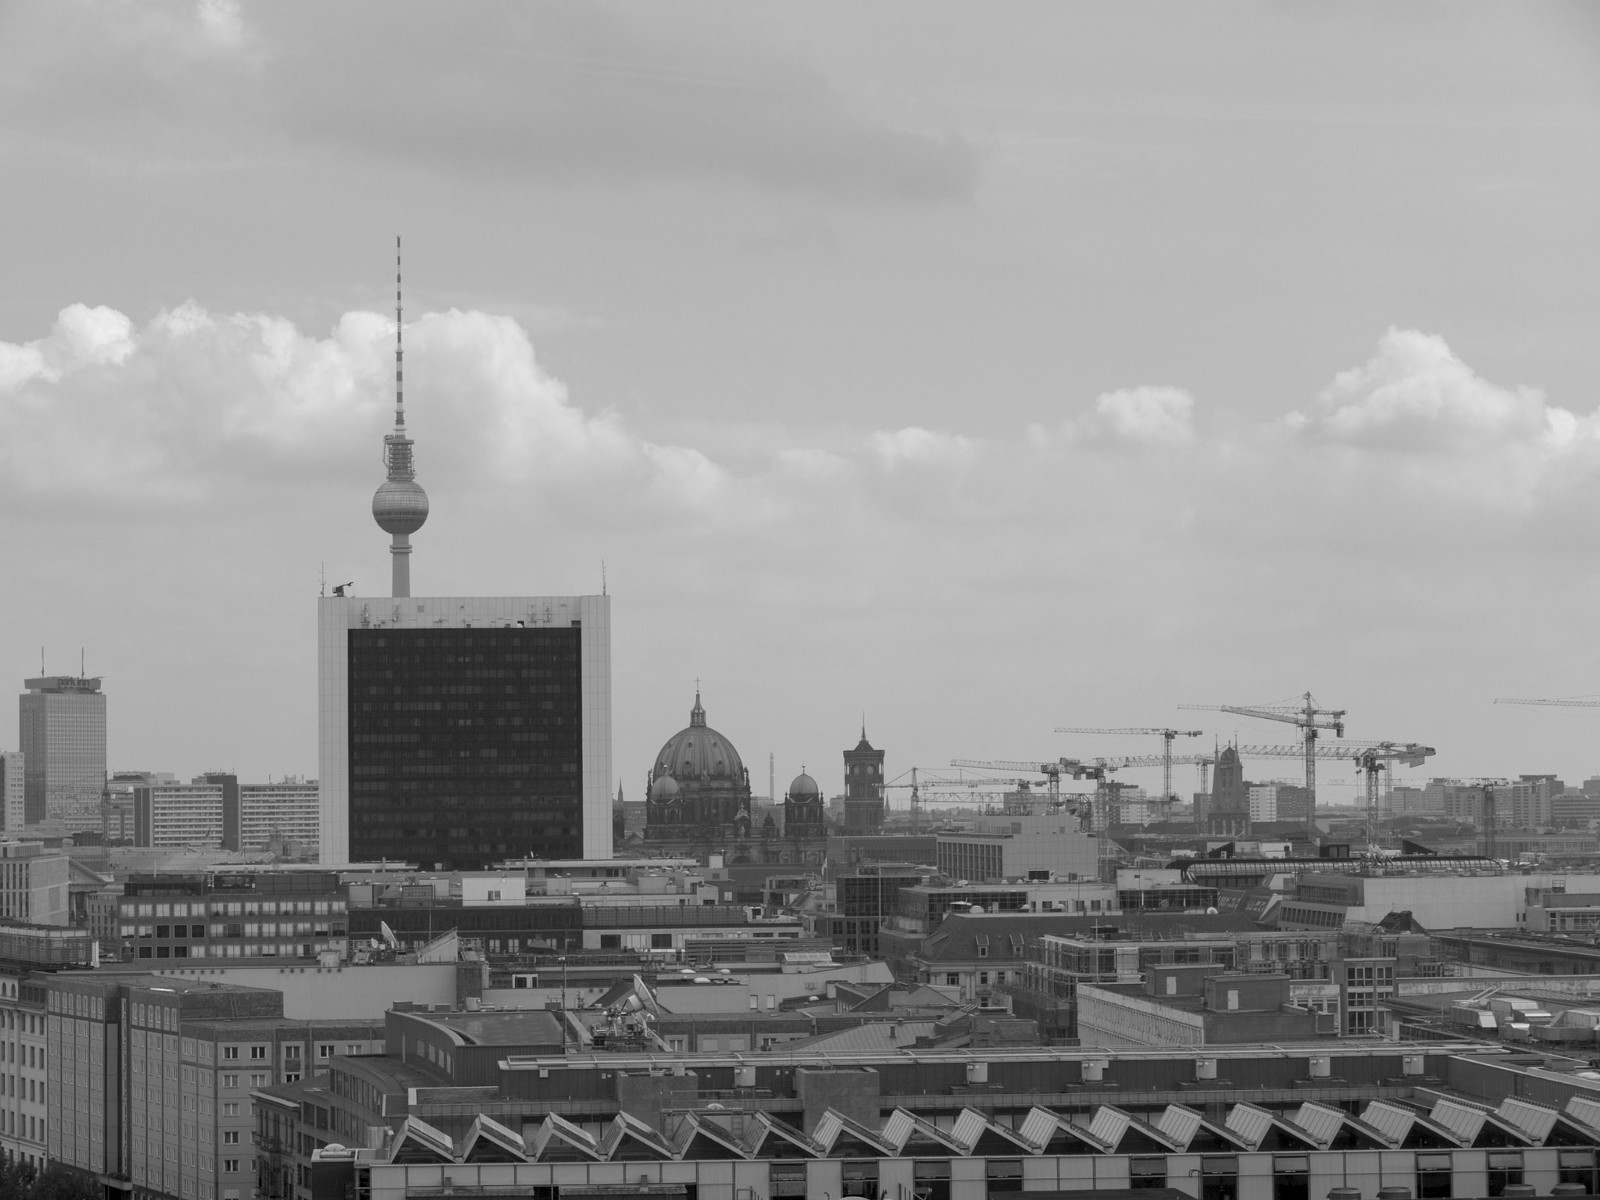 berlin startups what to look for when finding a good place to work